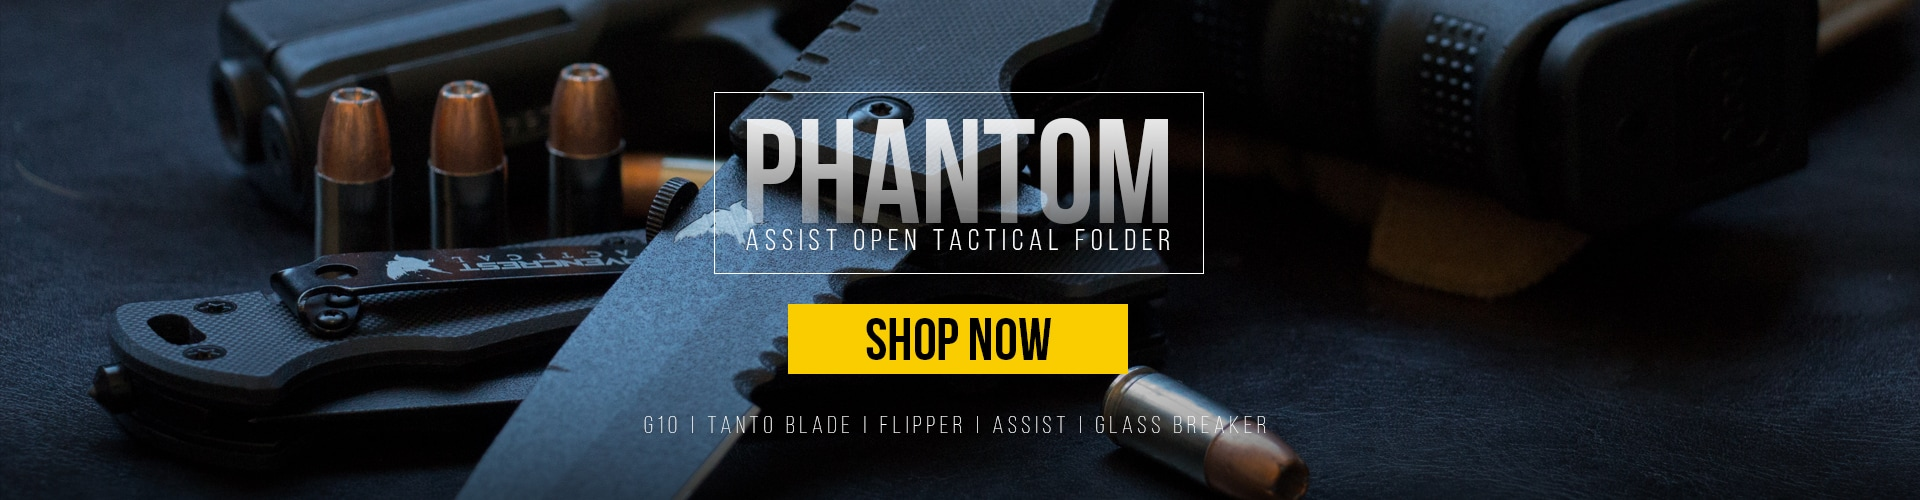 RavenCrest Tactical - Phantom Assist Open Tactical Folder